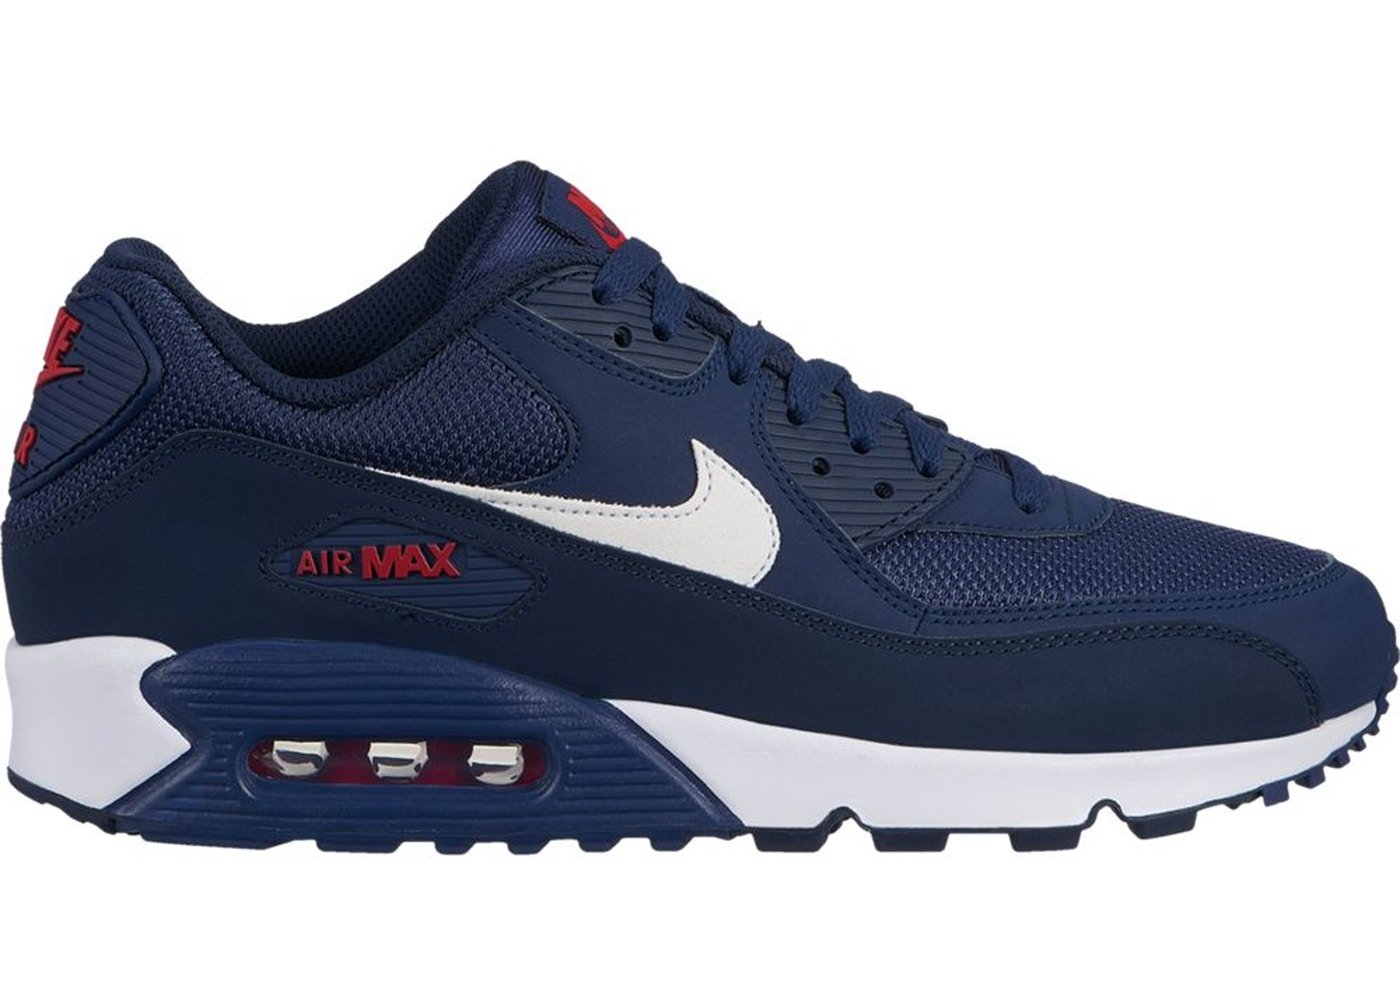 best sneakers 296a0 f3c0a Air Max 90 Midnight Navy University Red White - AJ1285-403